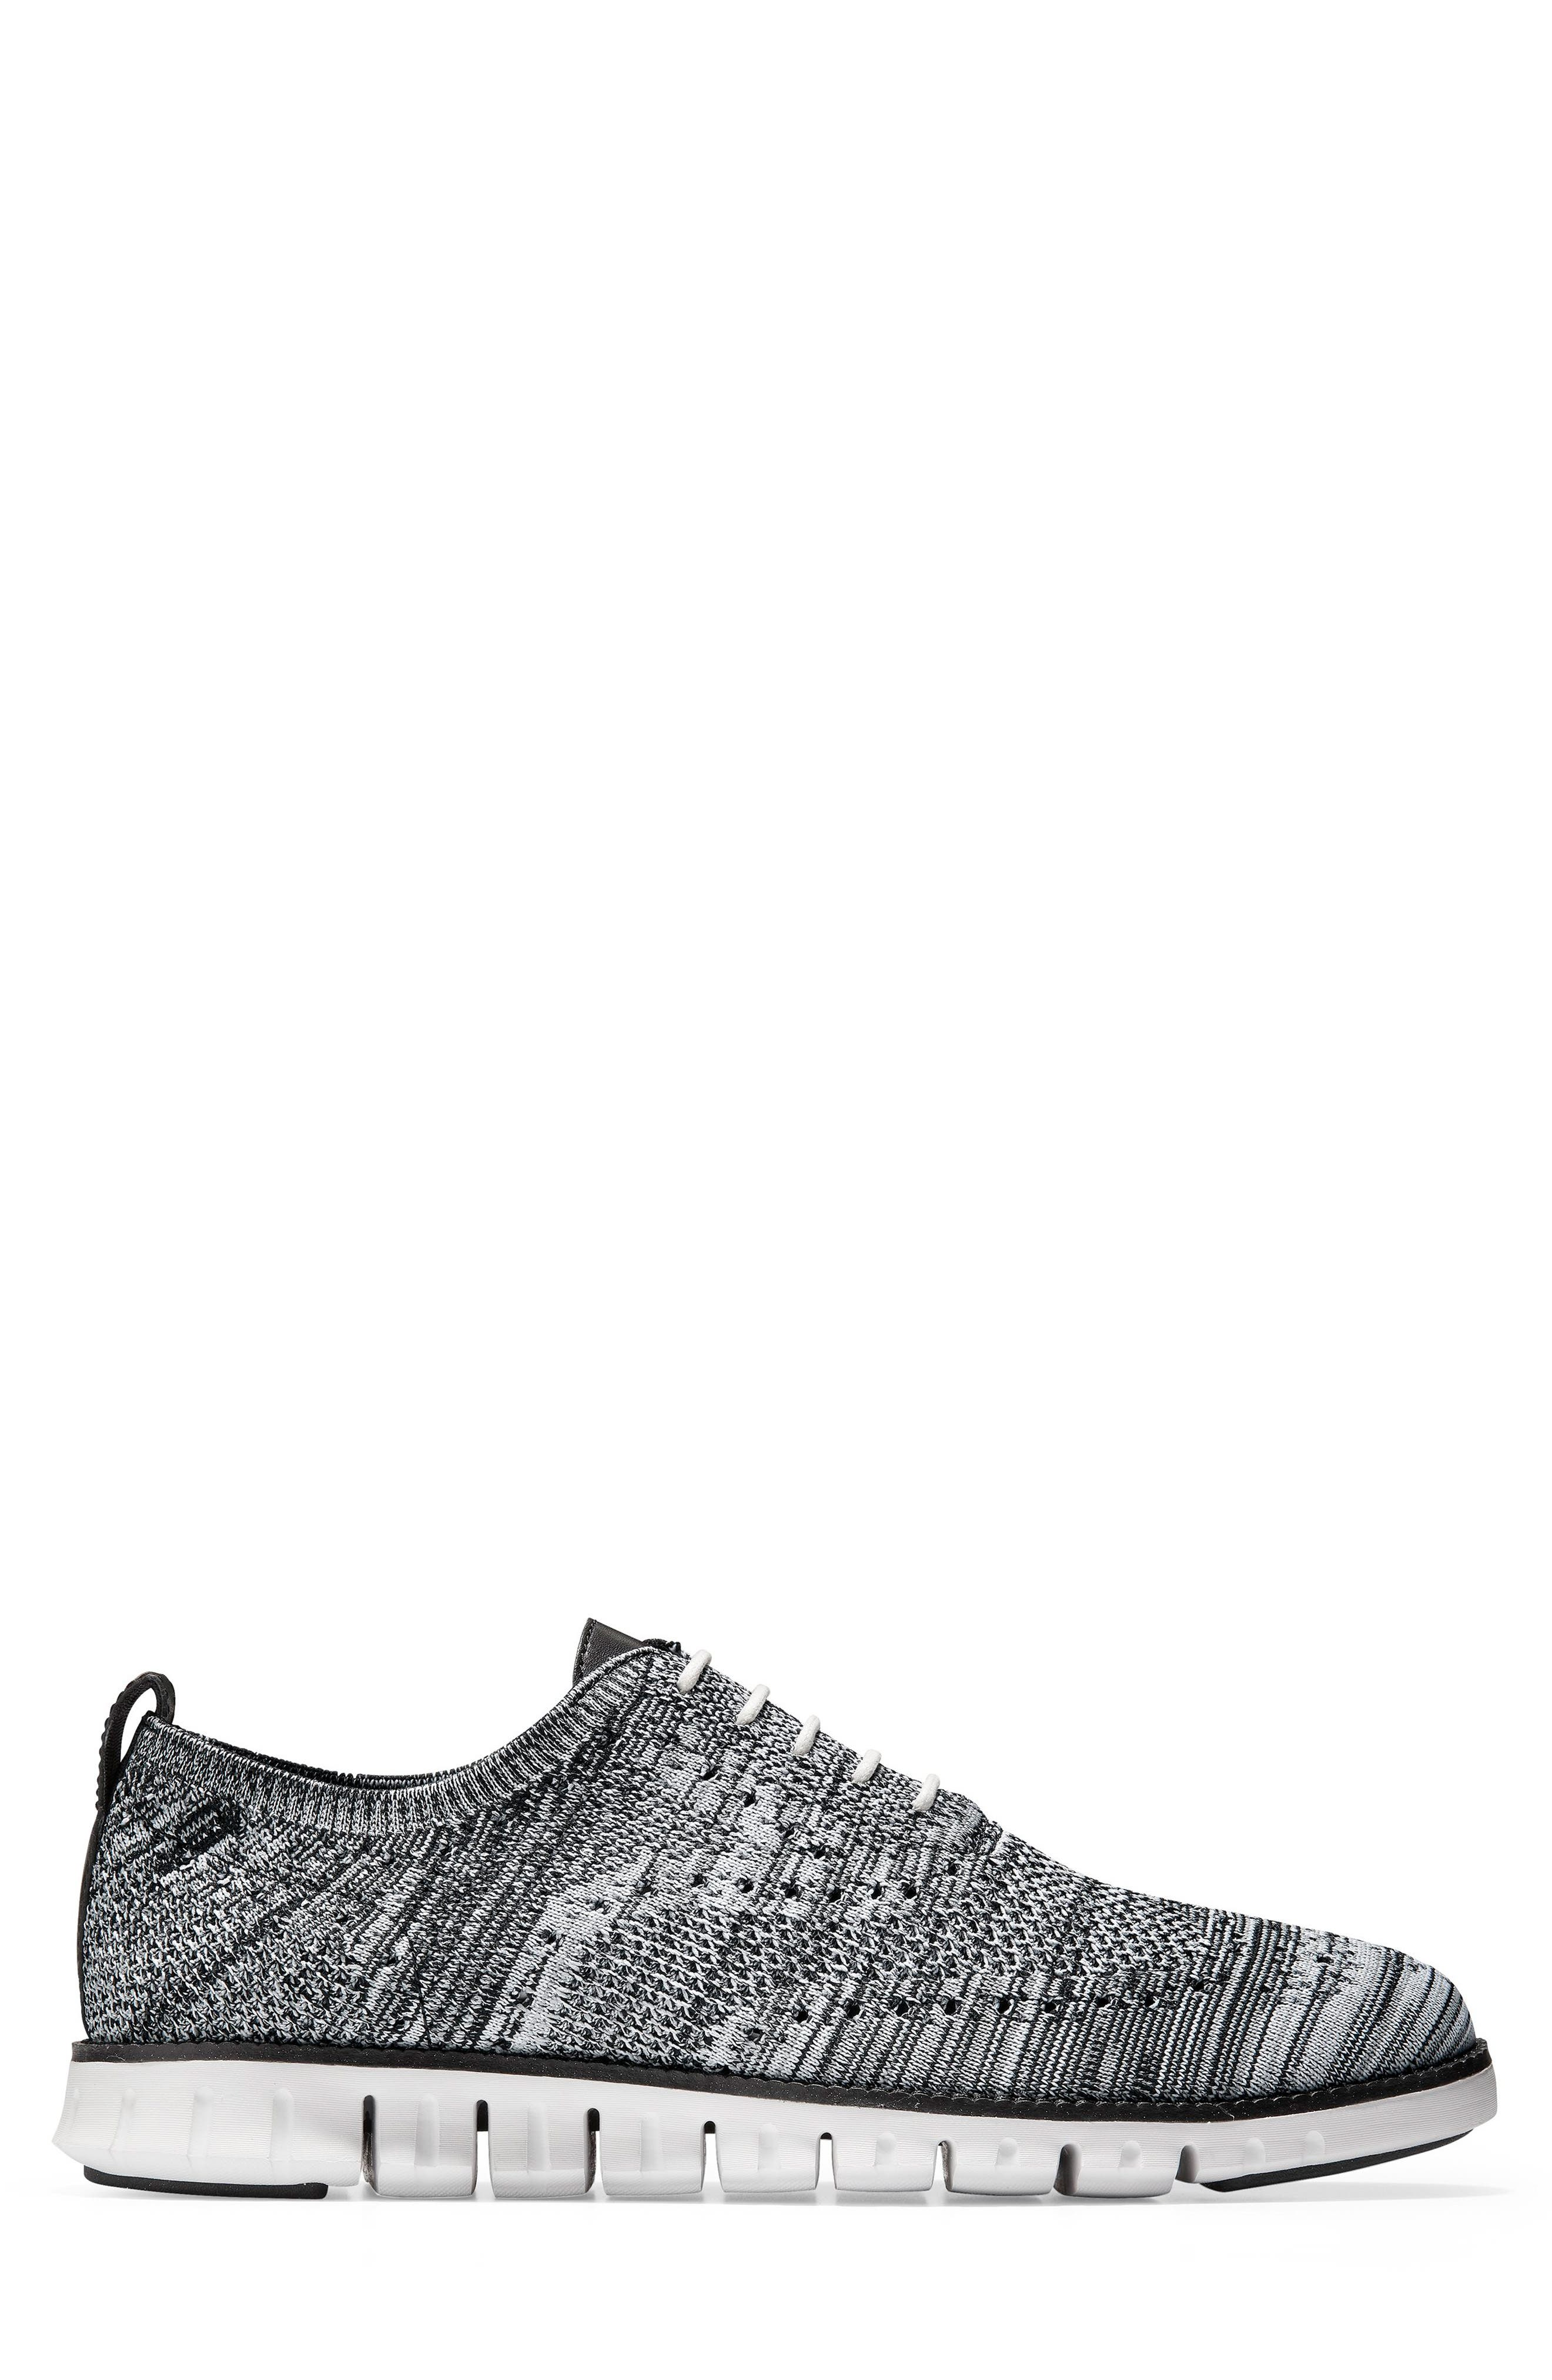 COLE HAAN, ZeroGrand Stitchlite Oxford, Alternate thumbnail 3, color, BLACK/ OPTIC WHITE/ SLEET KNIT